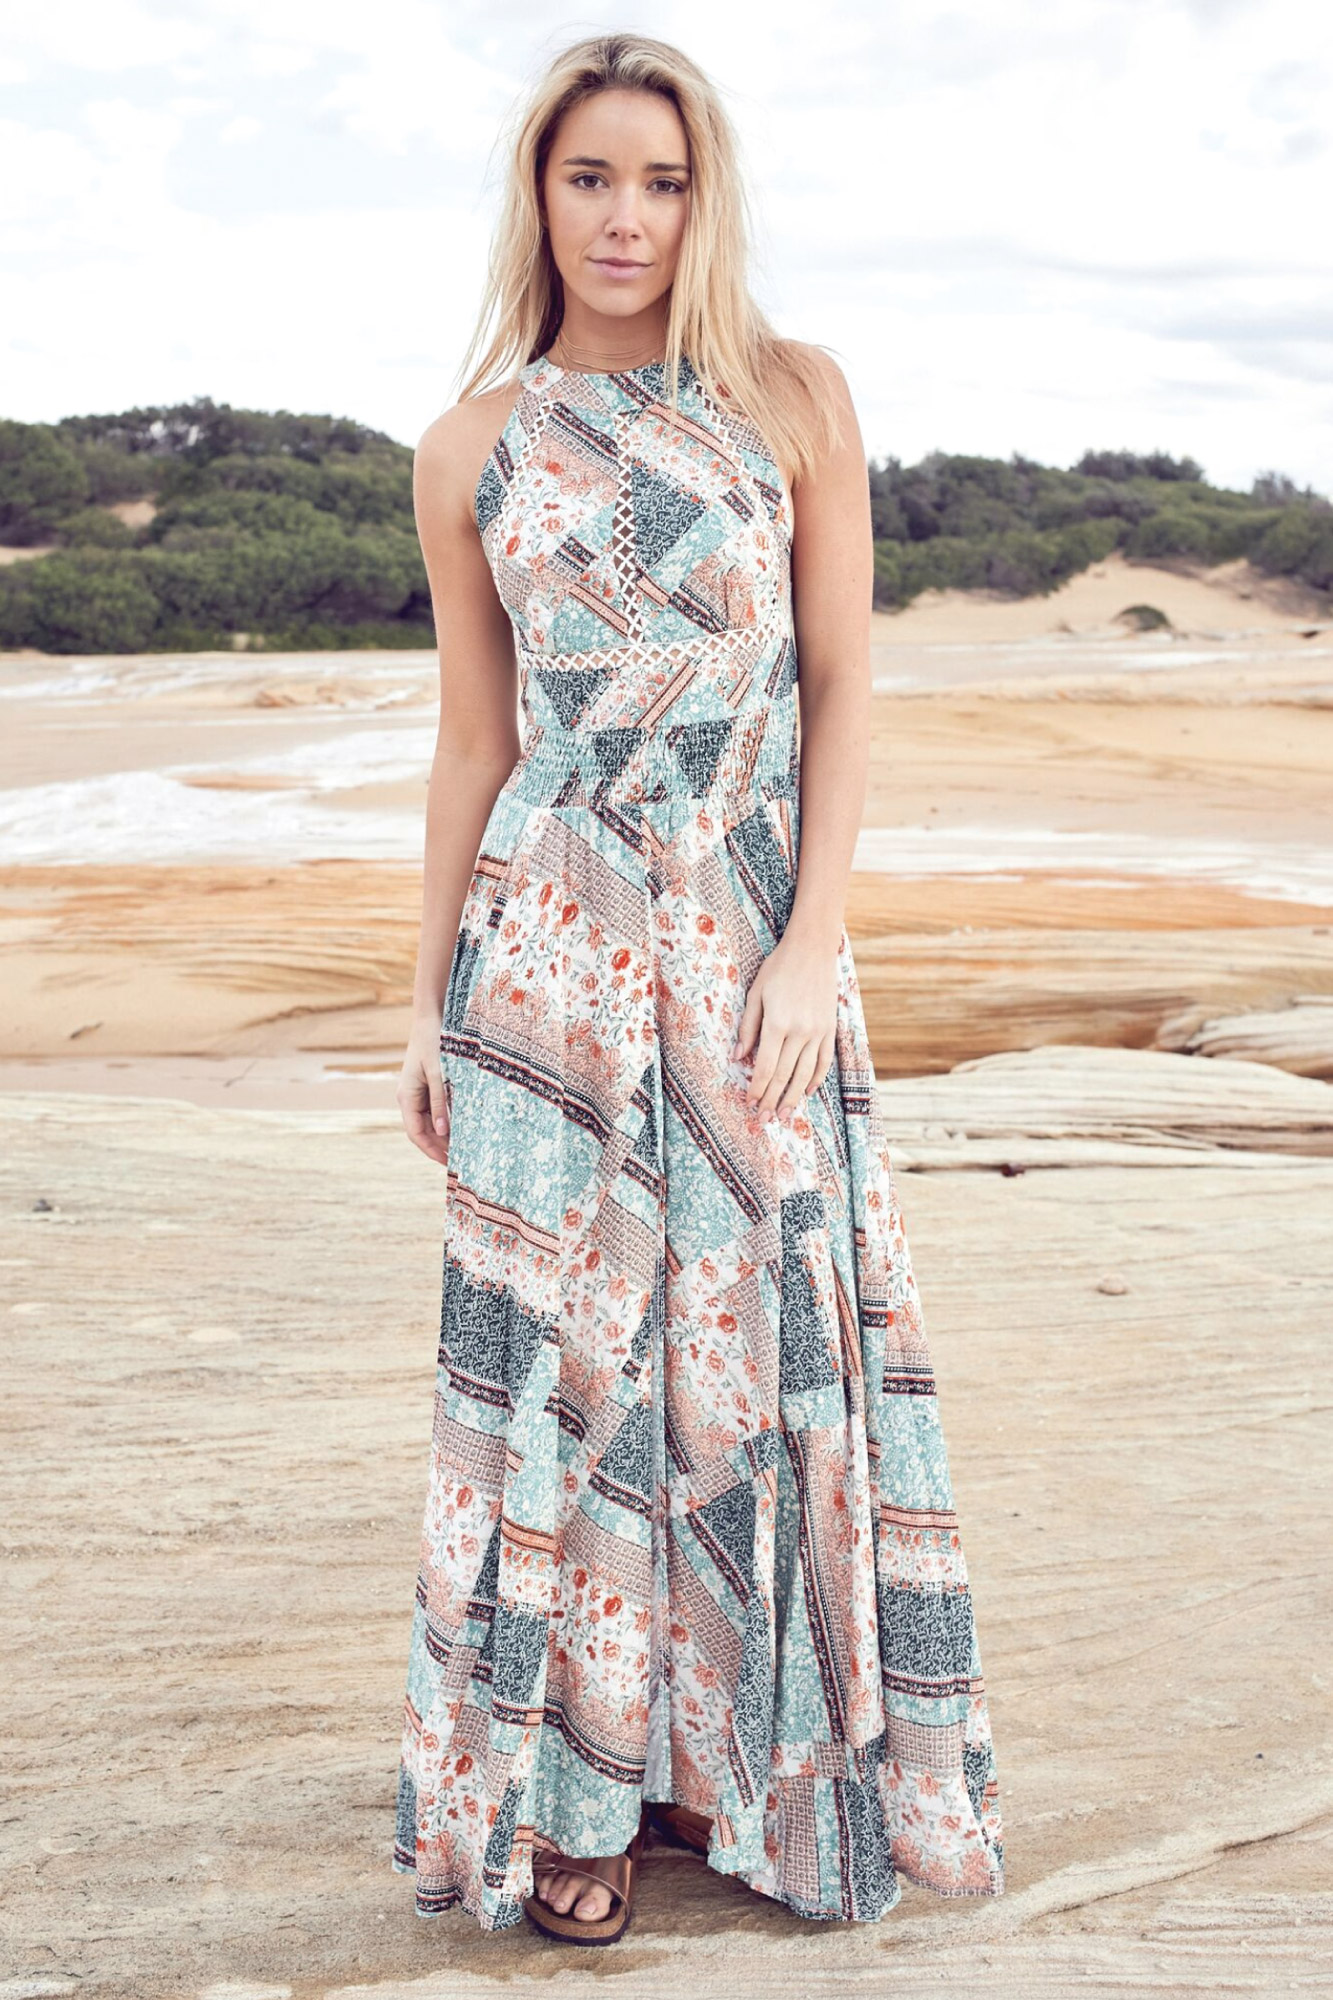 Plus Size Summer Fashion Trends 2018